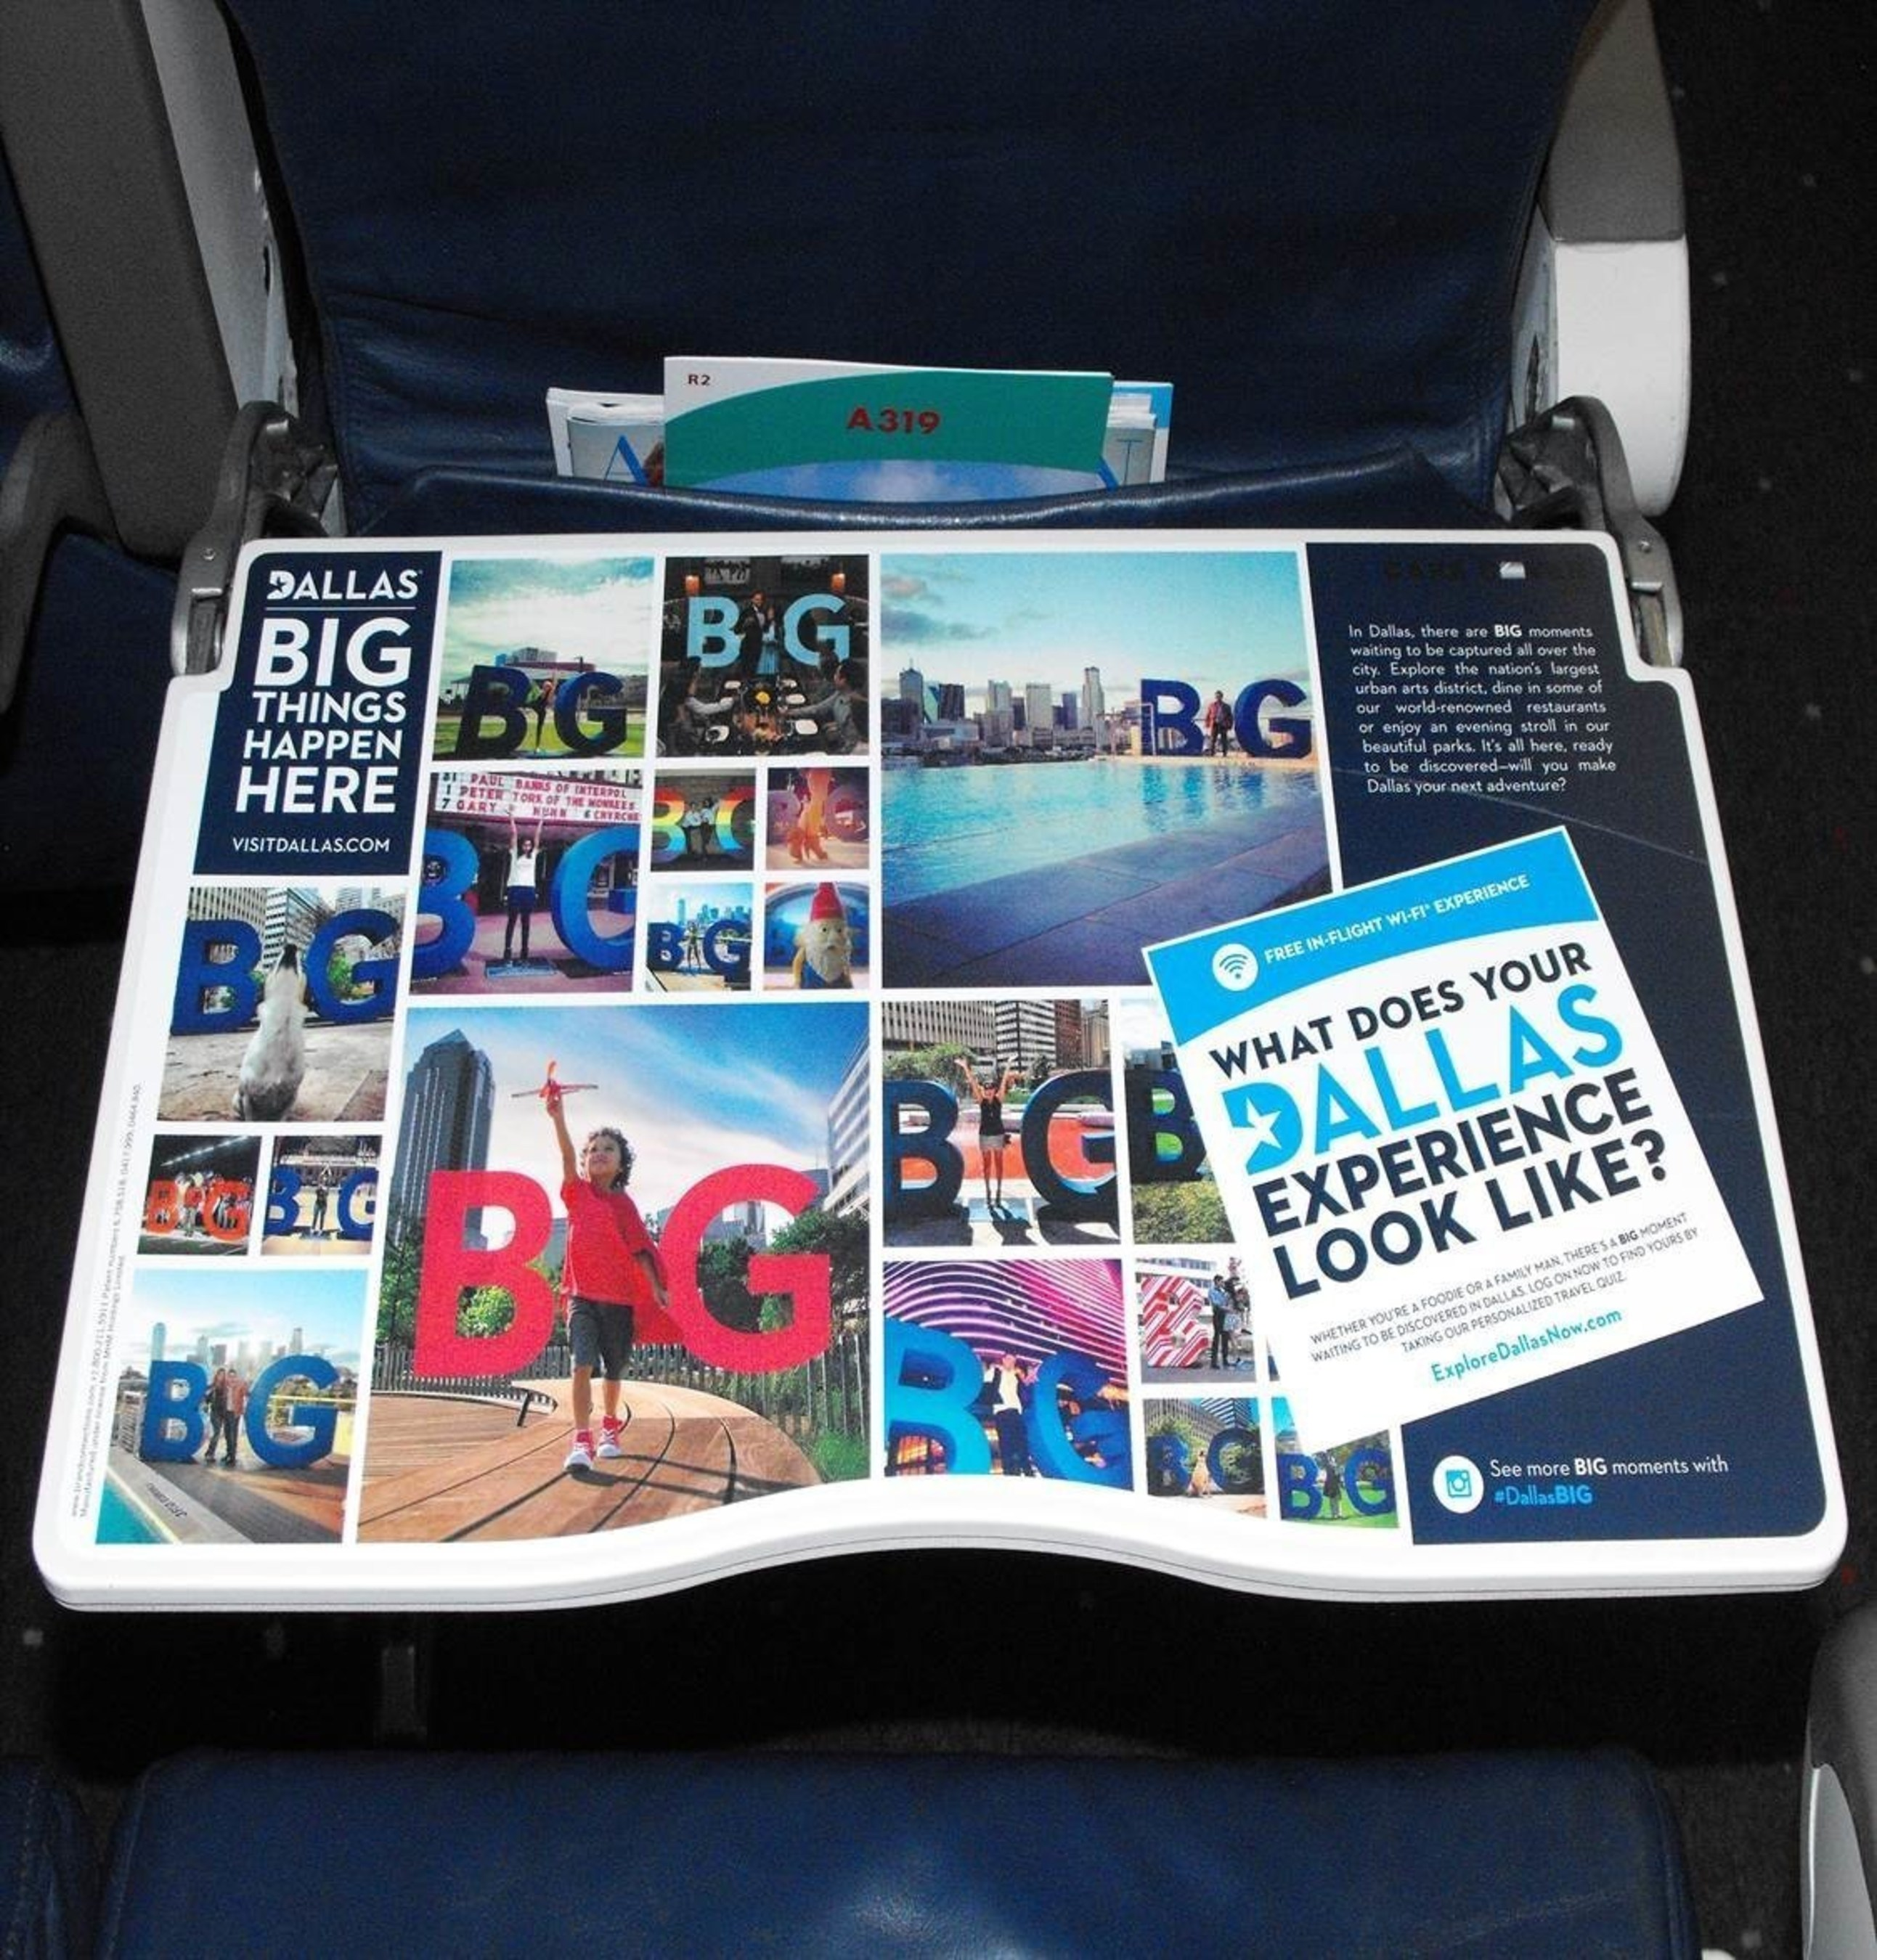 "Dallas branded airline tray tables promote the city's ""Big Things Happen Here"" campaign, driving passengers to explore Dallas mid-air via a whimsical and interactive online game."